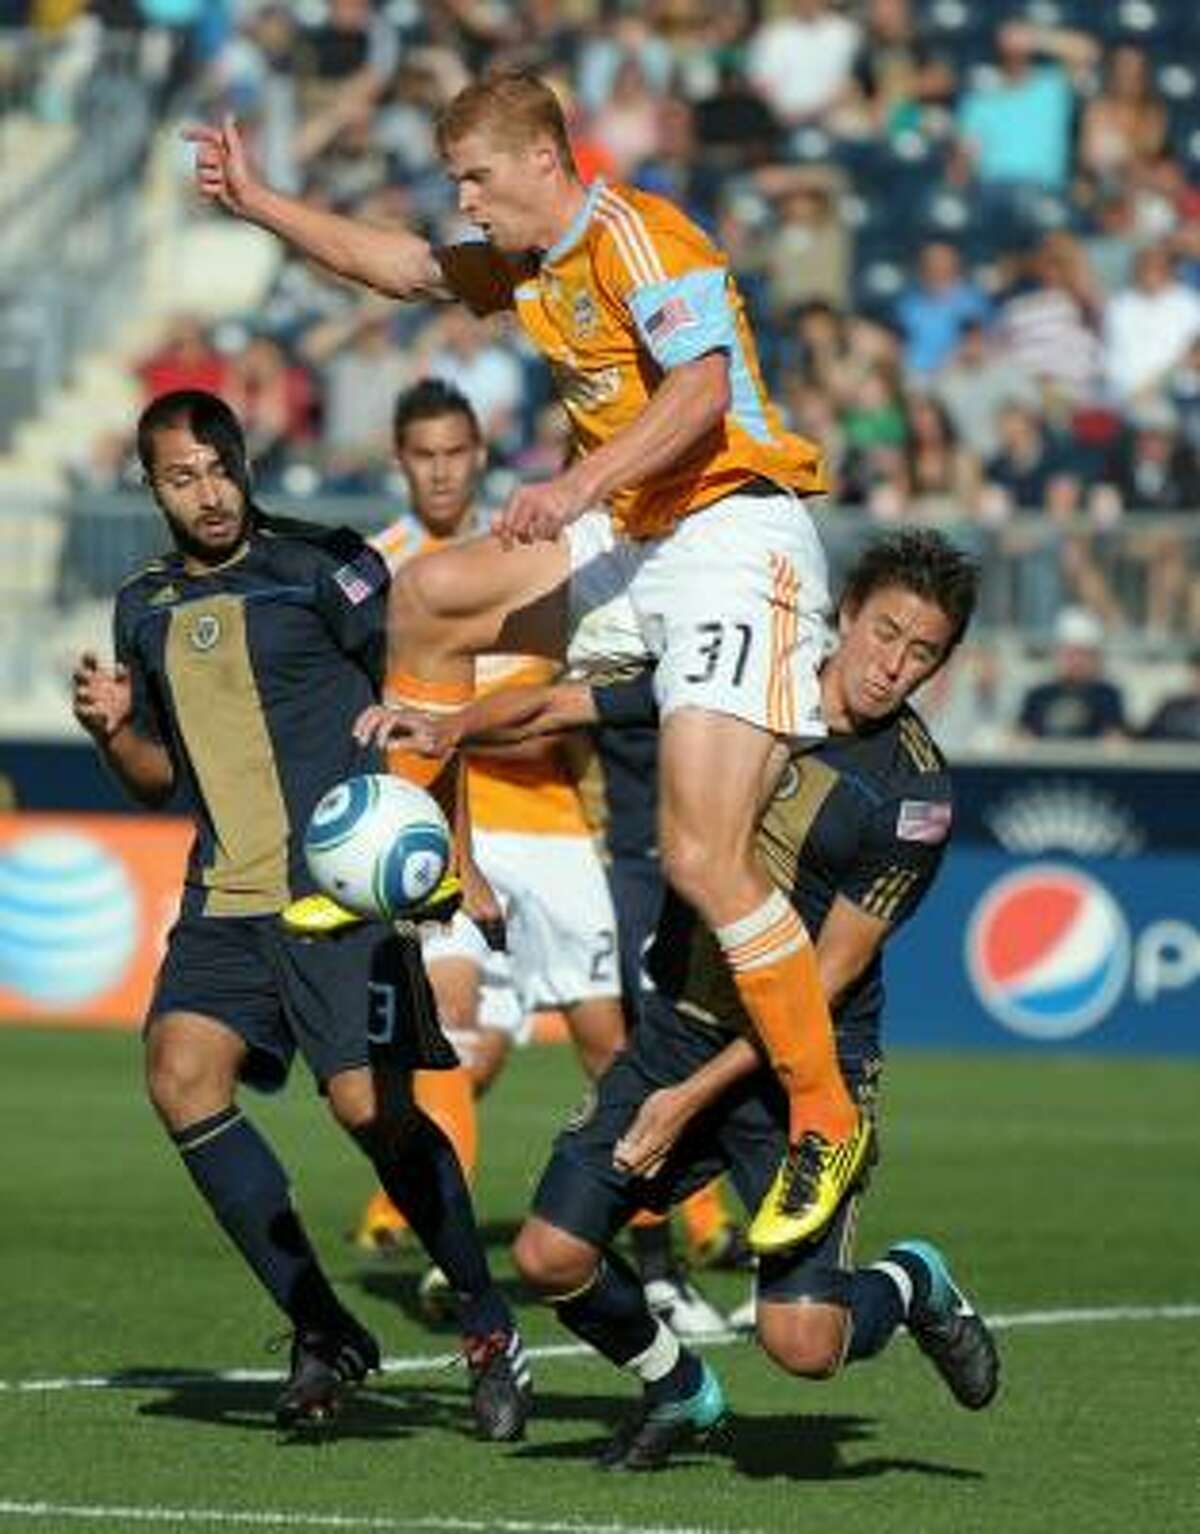 Dynamo defender Andrew Hainault deflects the ball in front of Philadelphia's Kyle Nakazawa. Hainault went on to score moments later.